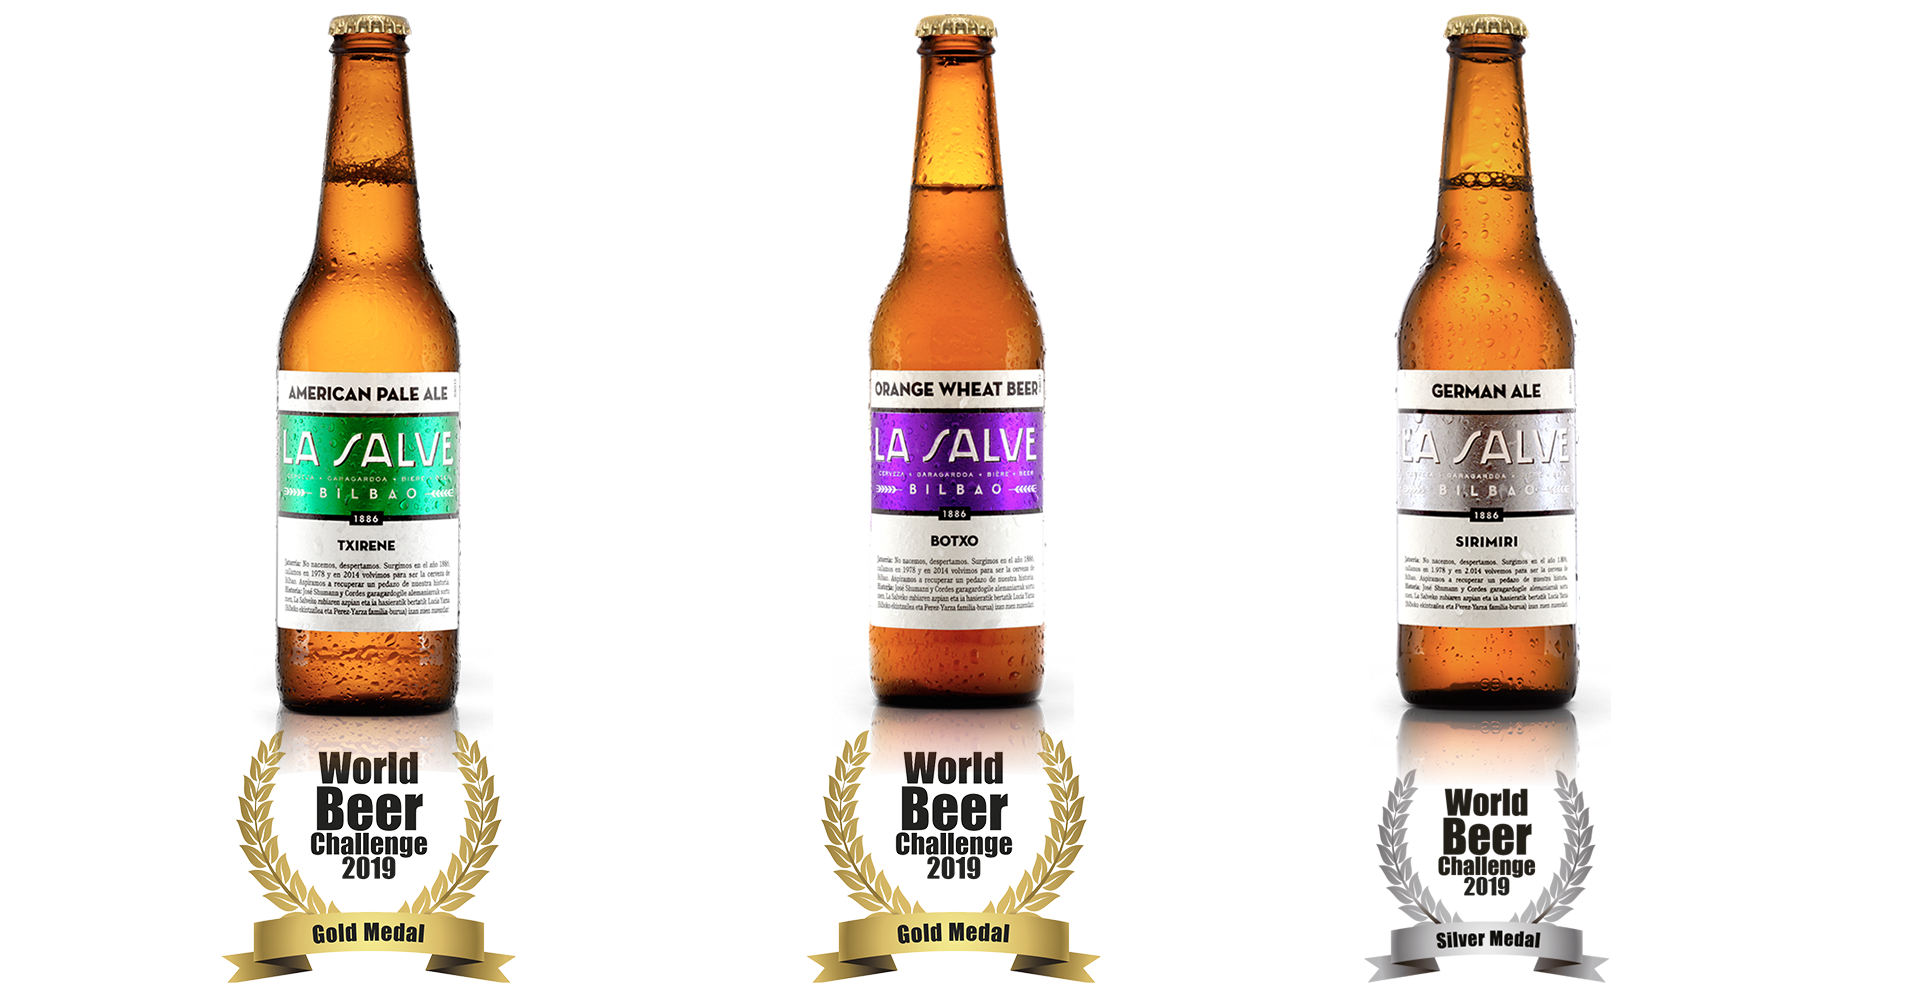 LA SALVE World Beer Challenge 2019 16-9